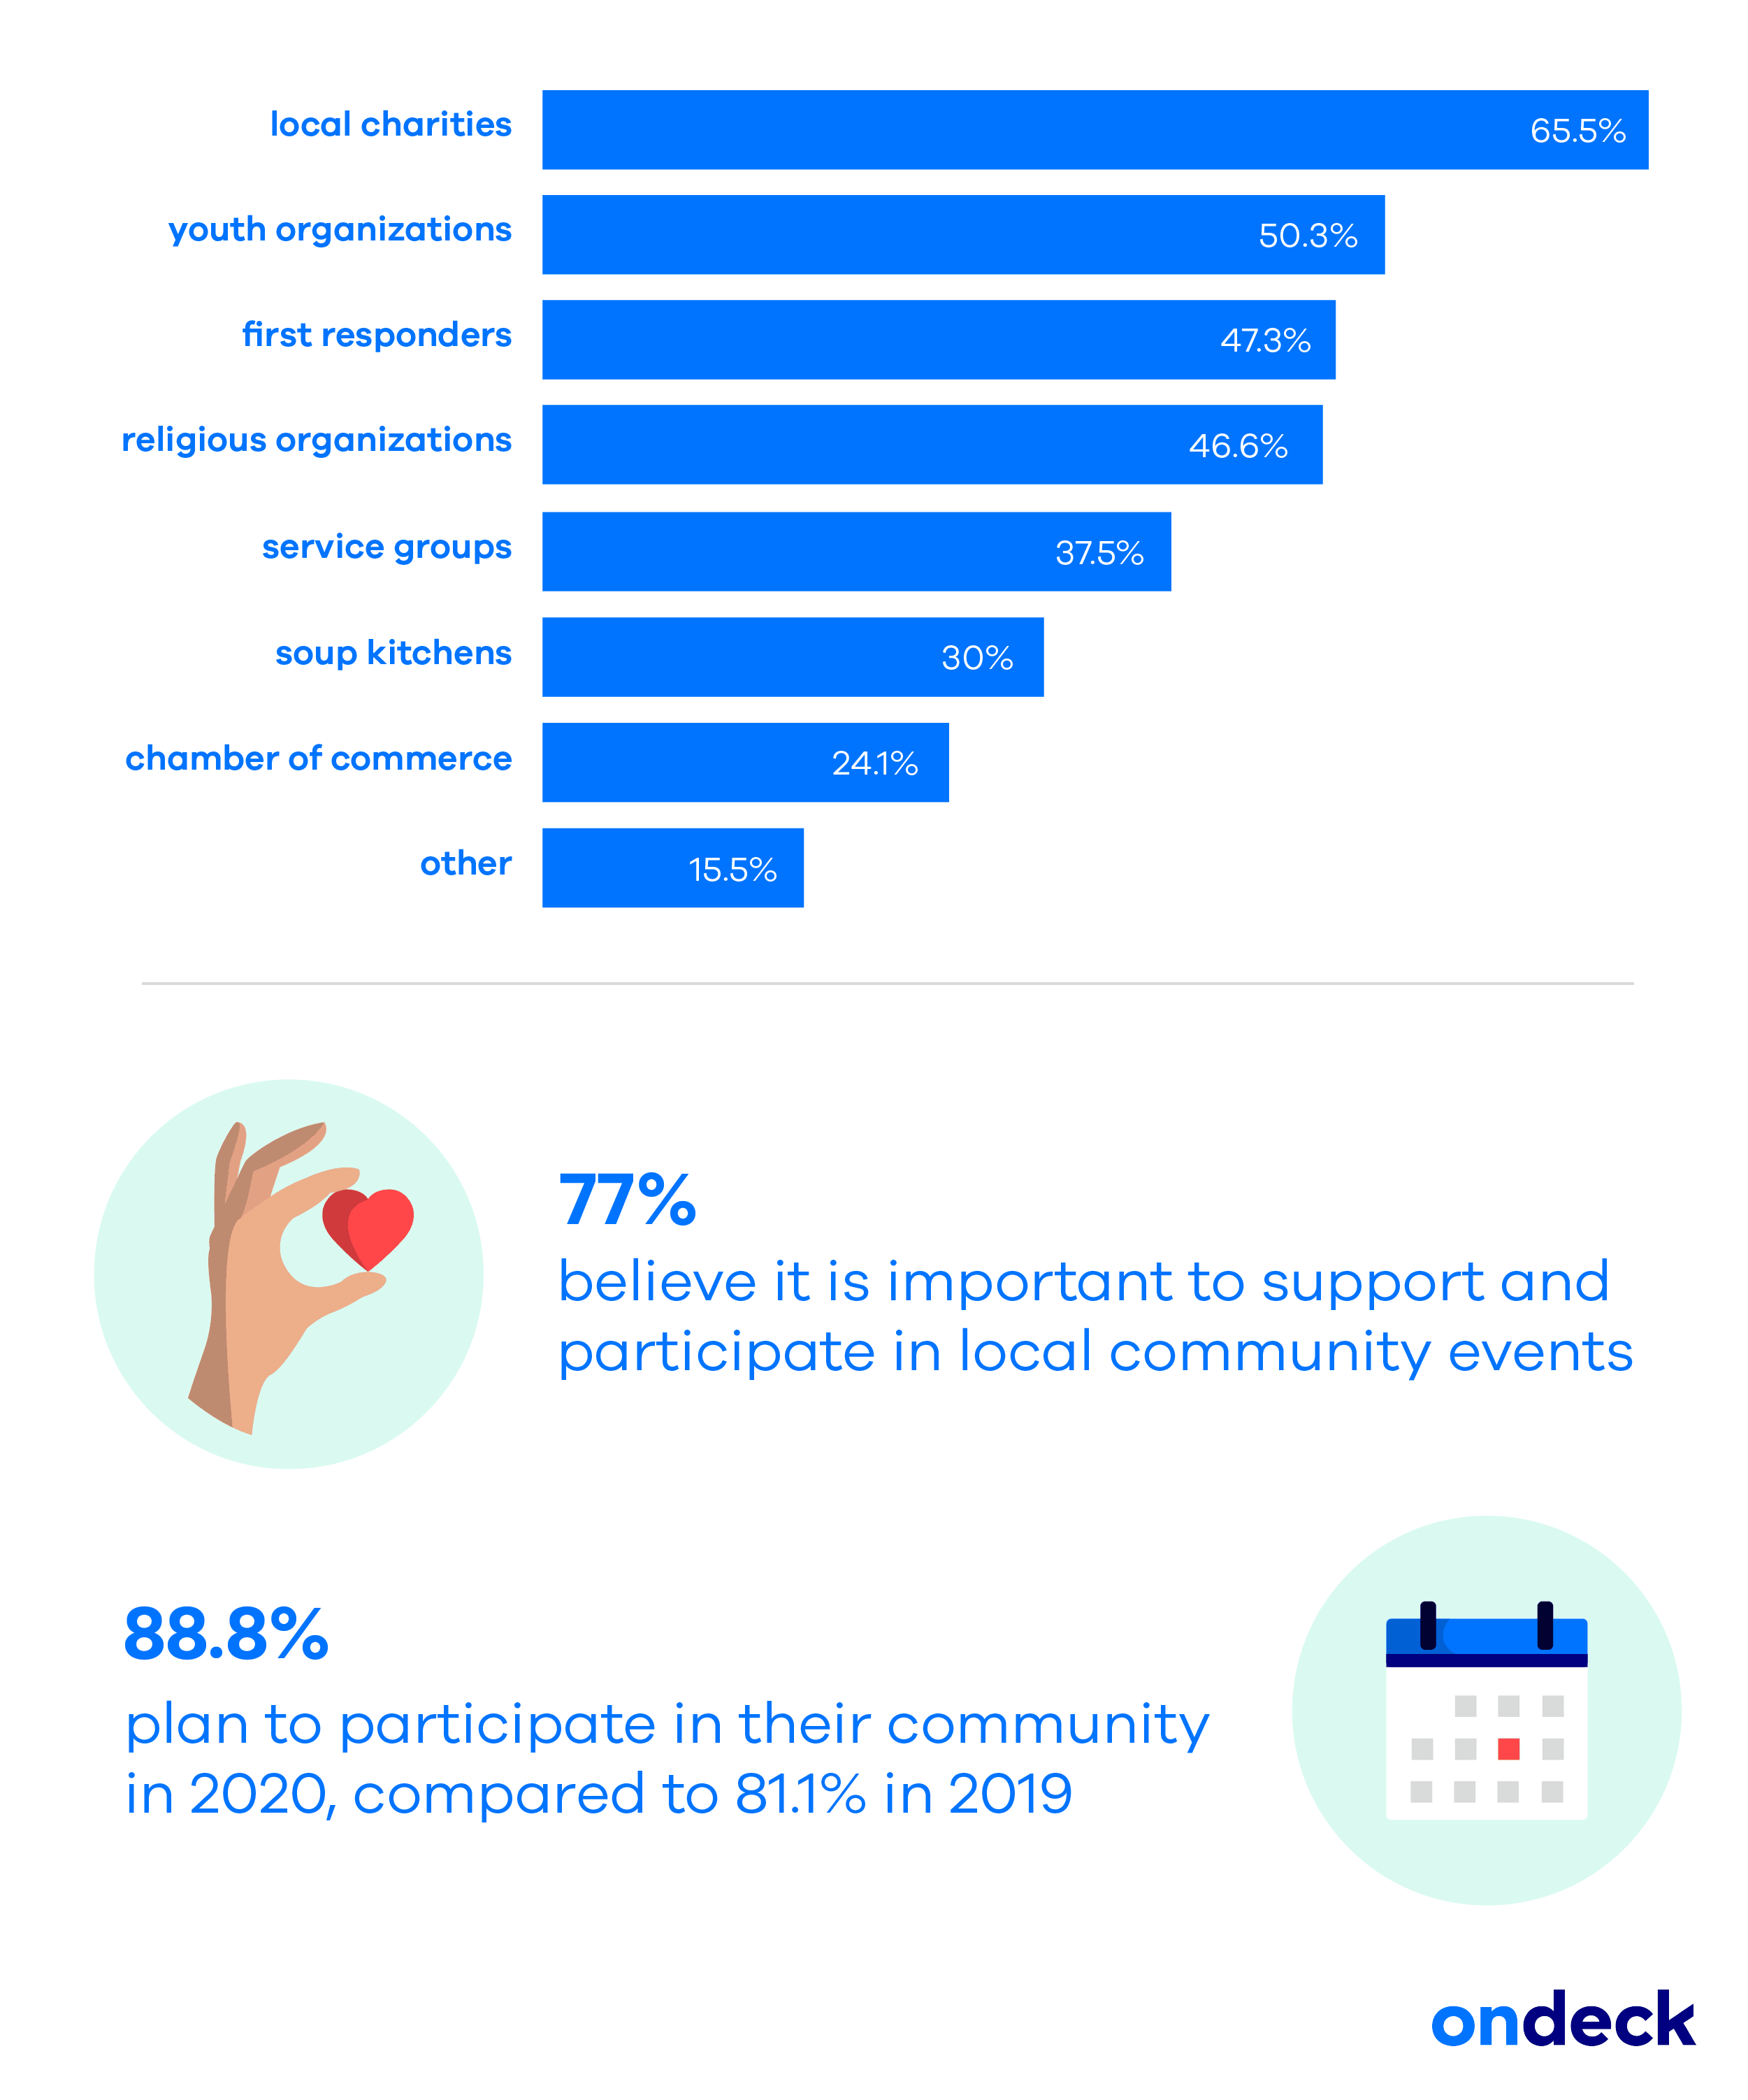 ondeck small business community impact survey